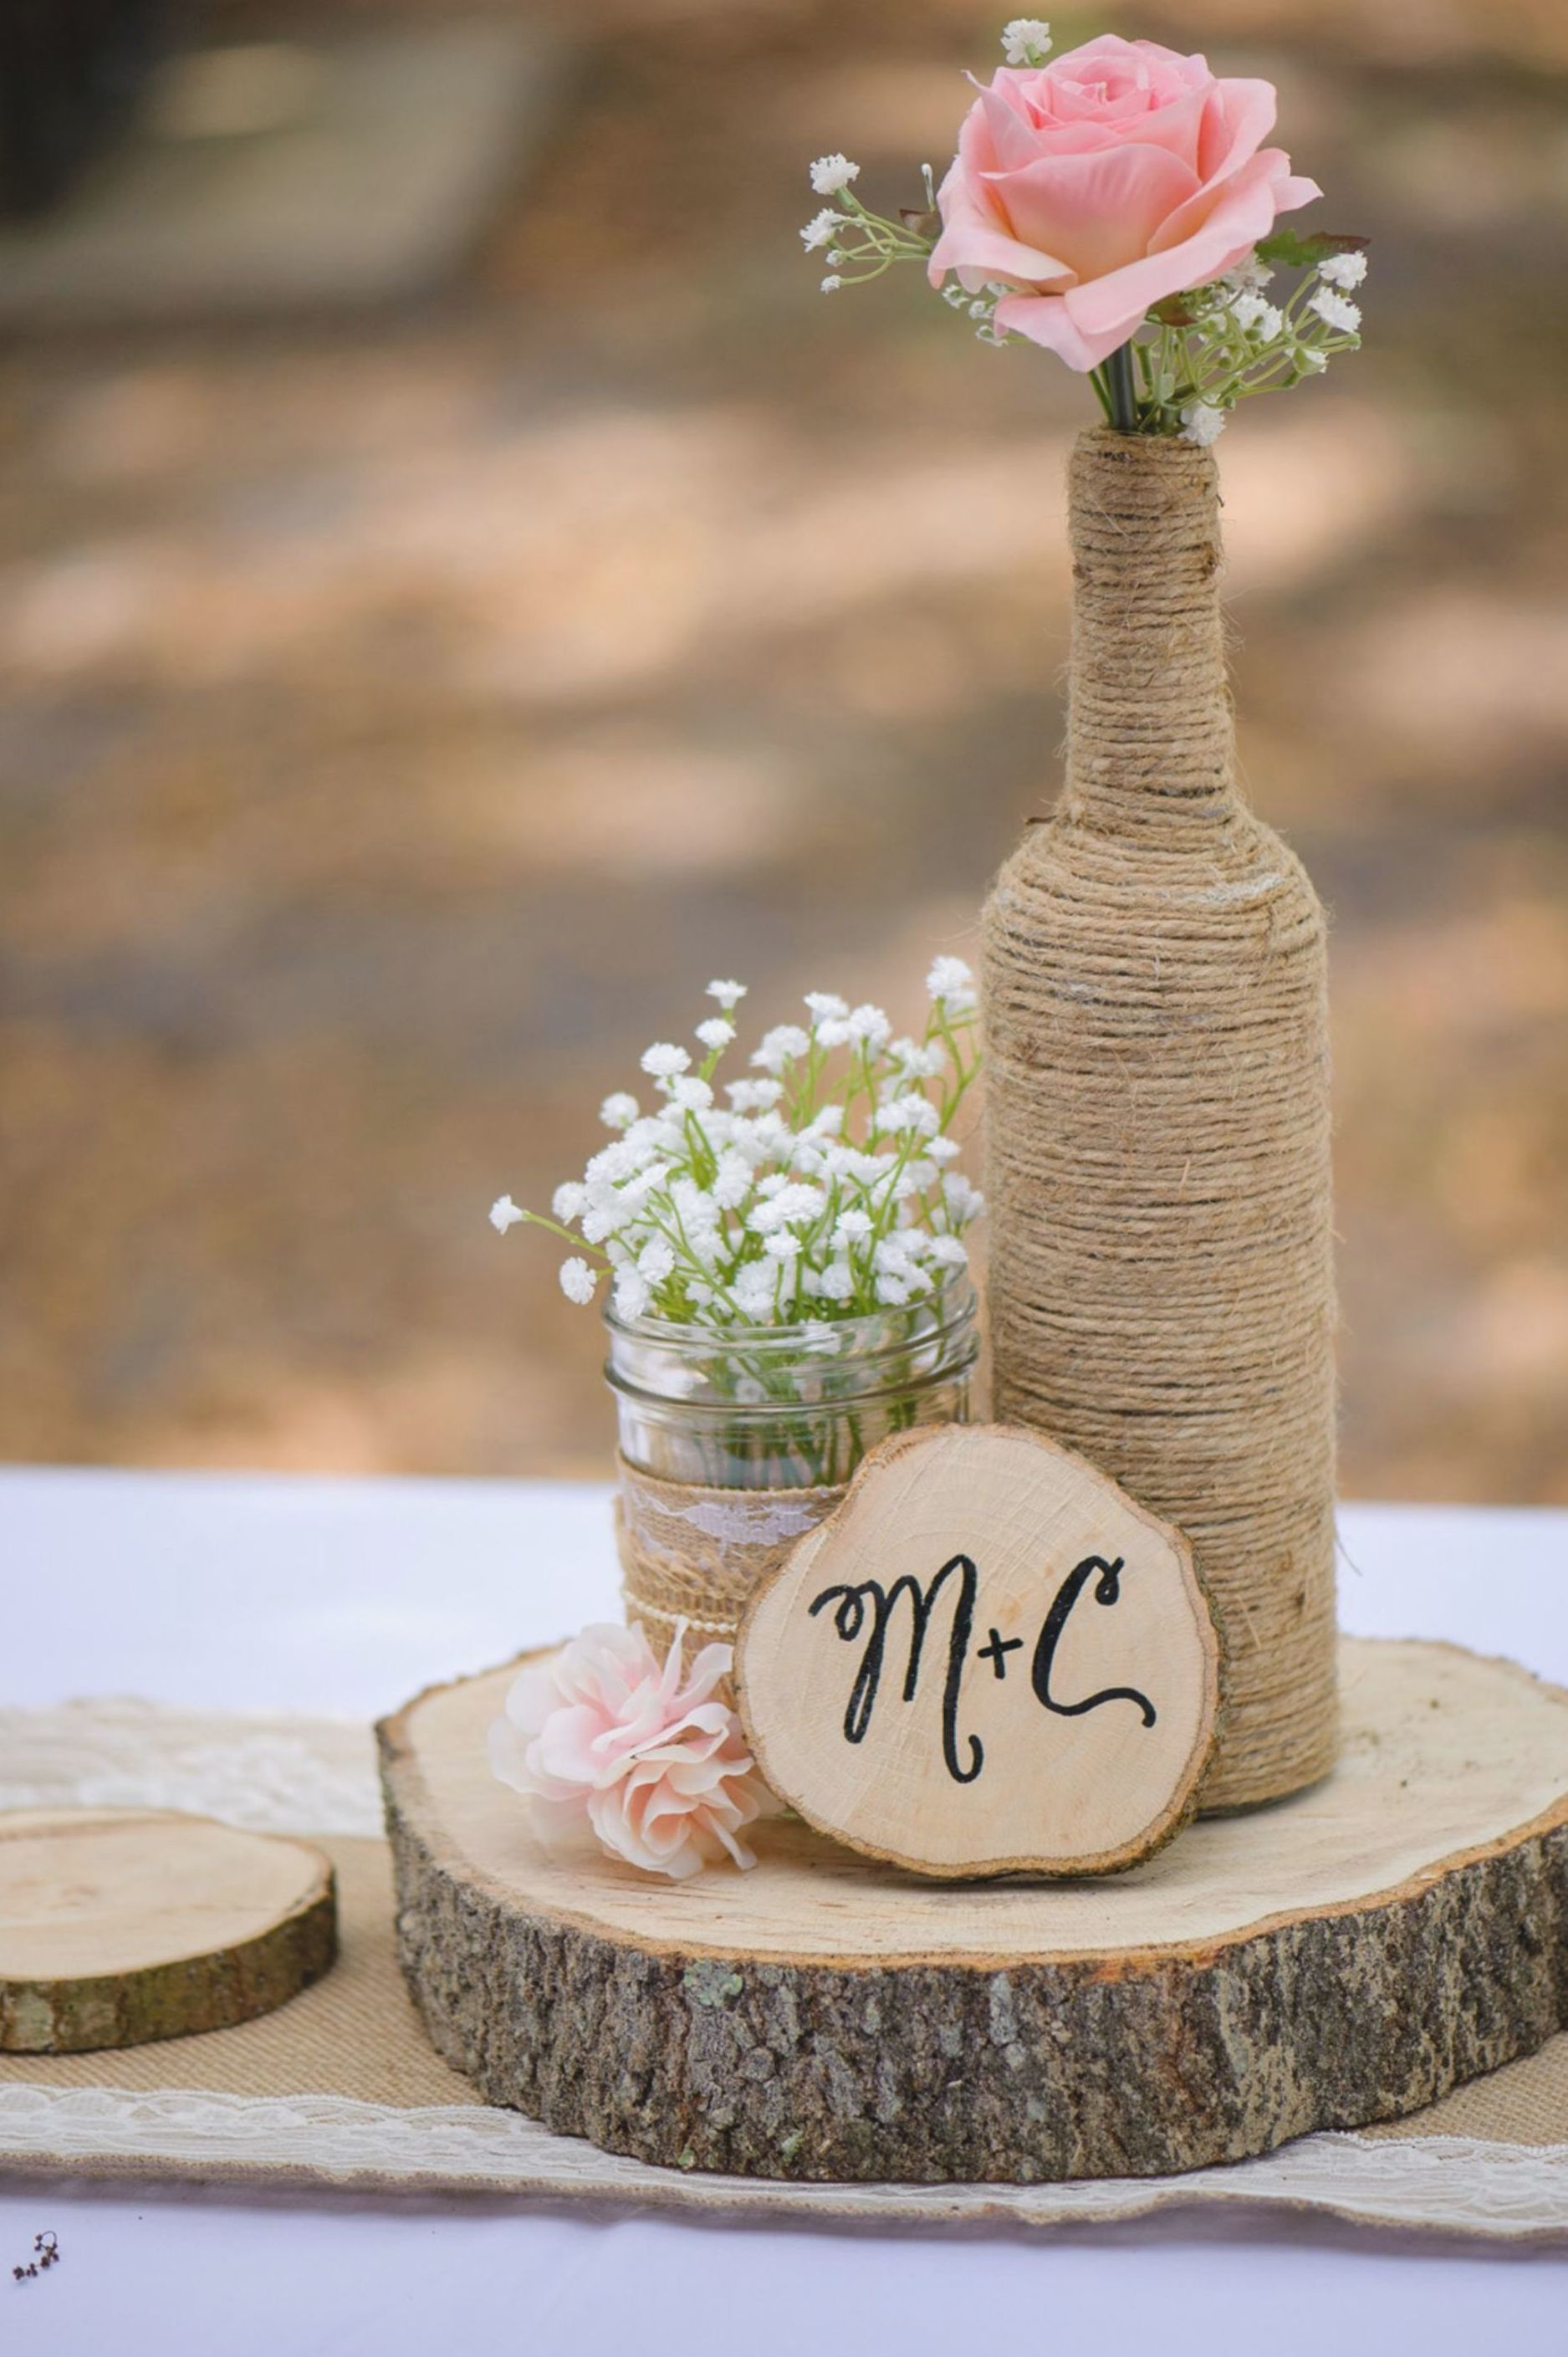 Set Of 12 10 Inch Tree Slices For Centerpieces Tree Slices For Tables Wood Discs Wood Slice Centerpieces Wedding Table Decor Wood Centerpieces Wood Slices Wedding Wood Slab Centerpiece